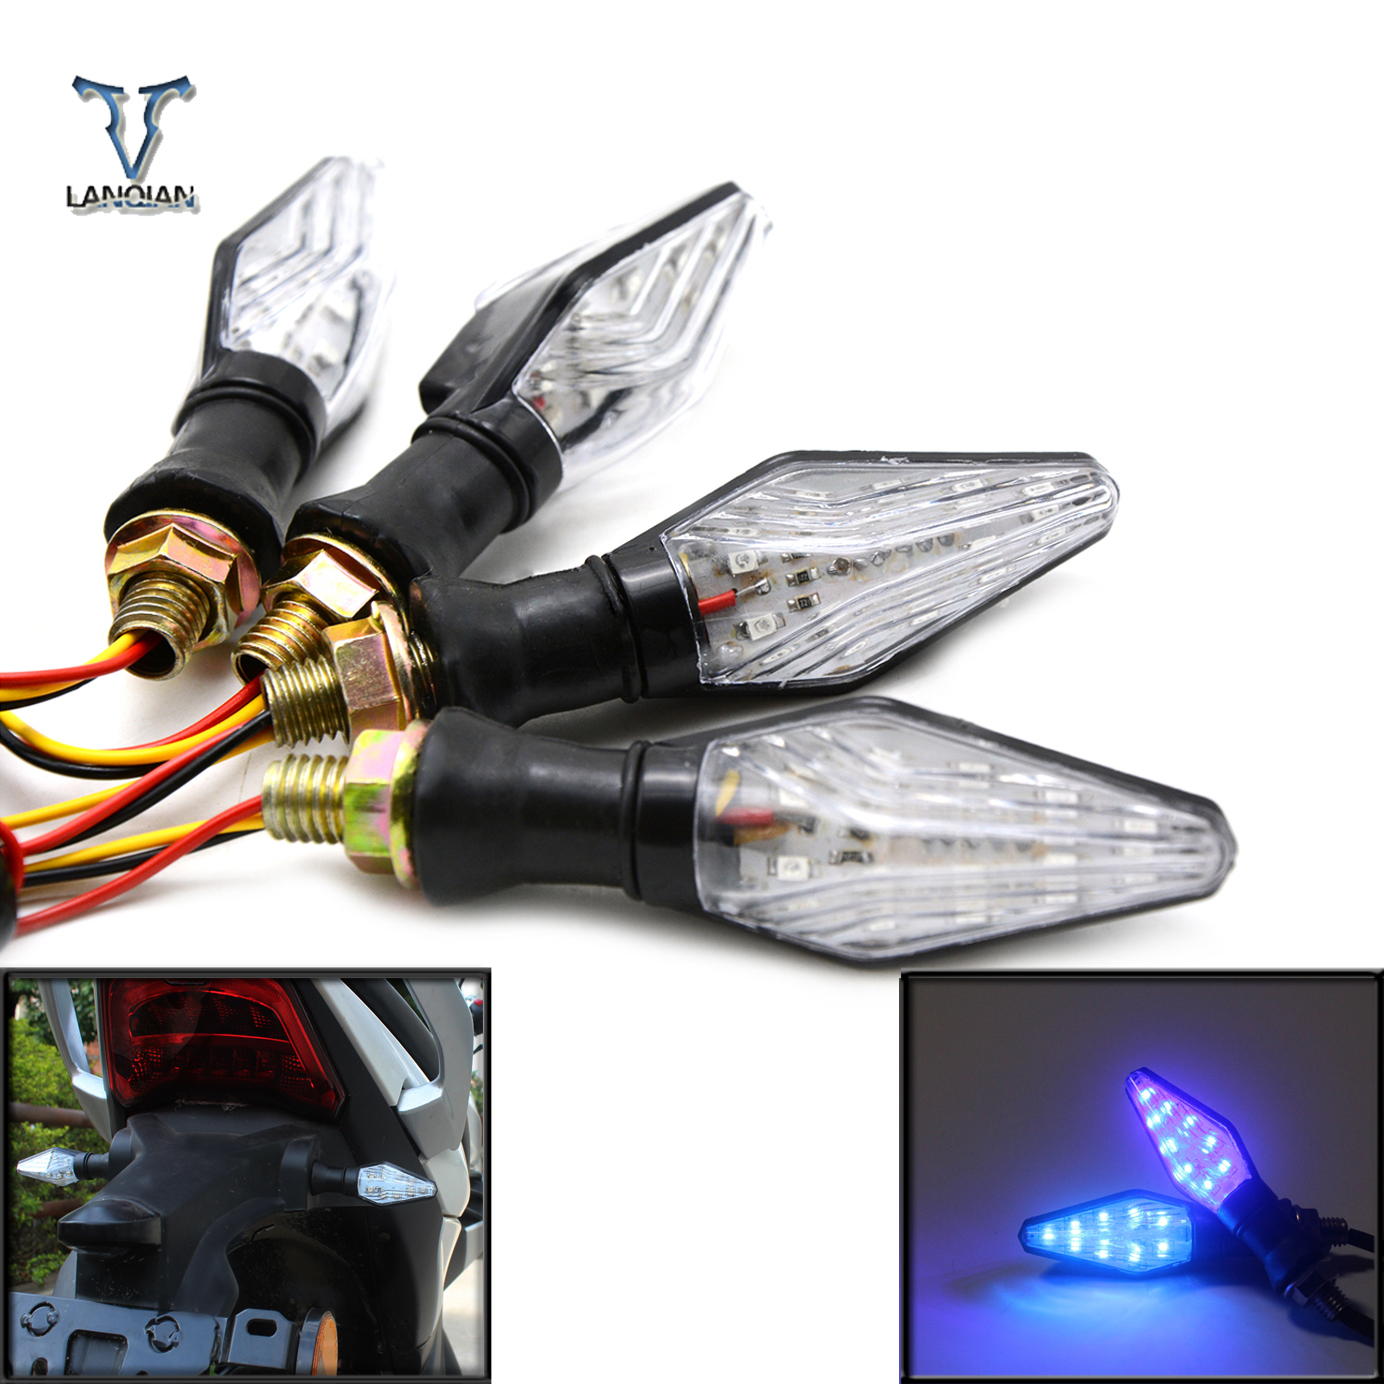 Led Motorcycle turn signals light led lamps sportster for Yamaha FJ 09/MT 09 Tracer MT 10 MT 03 YZF R25 YZF R3 FZ1 FAZER Fazer